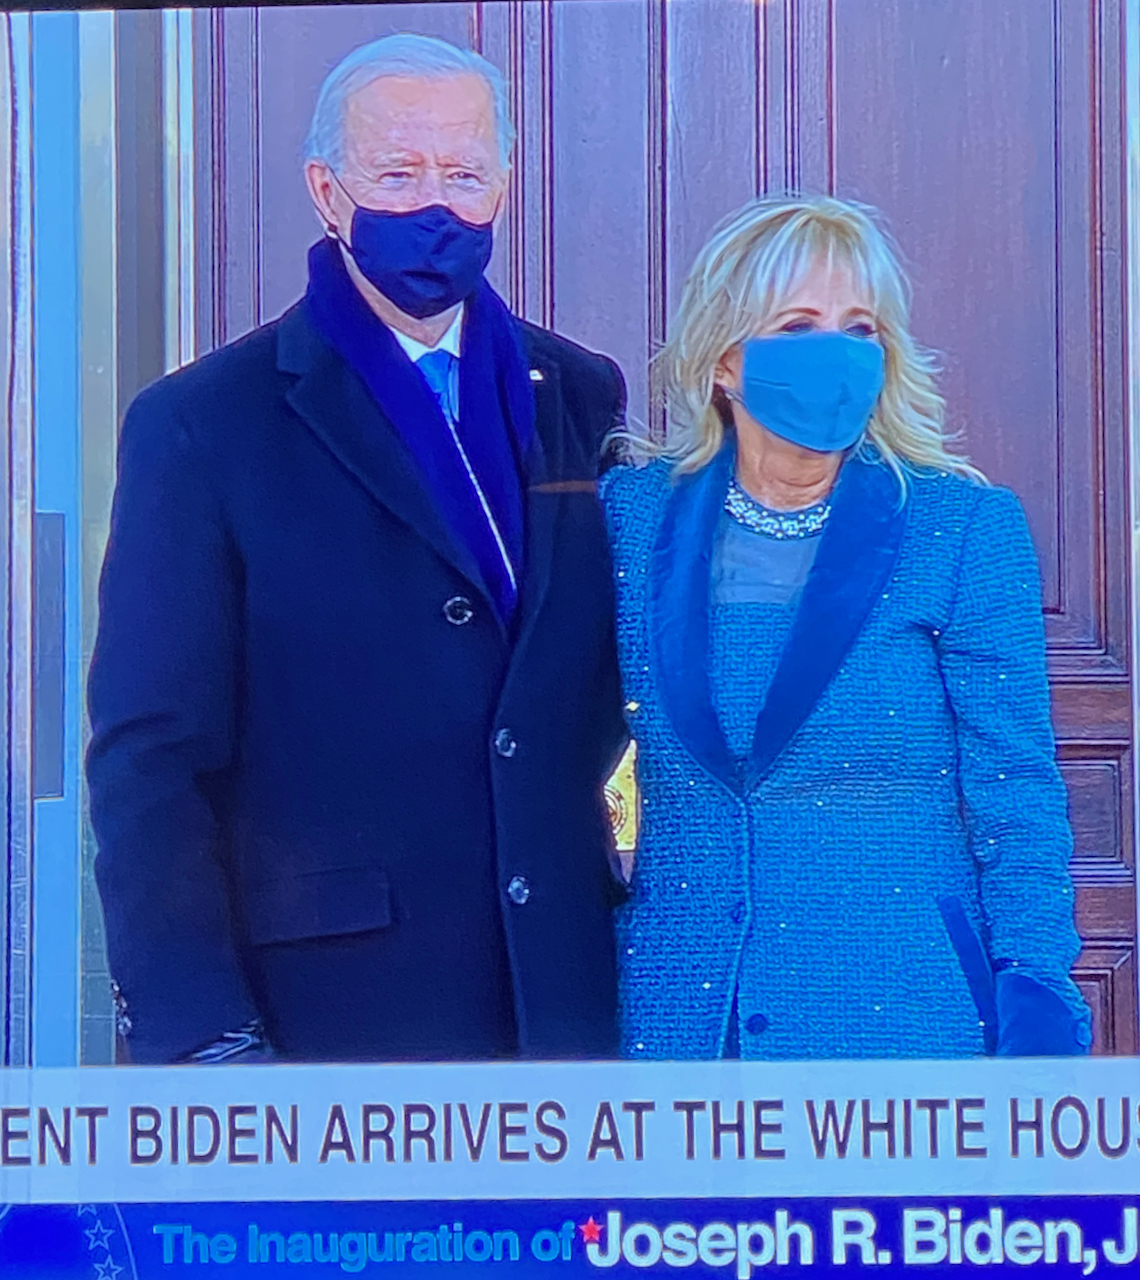 President Biden and first lady matched their masks to their outfits